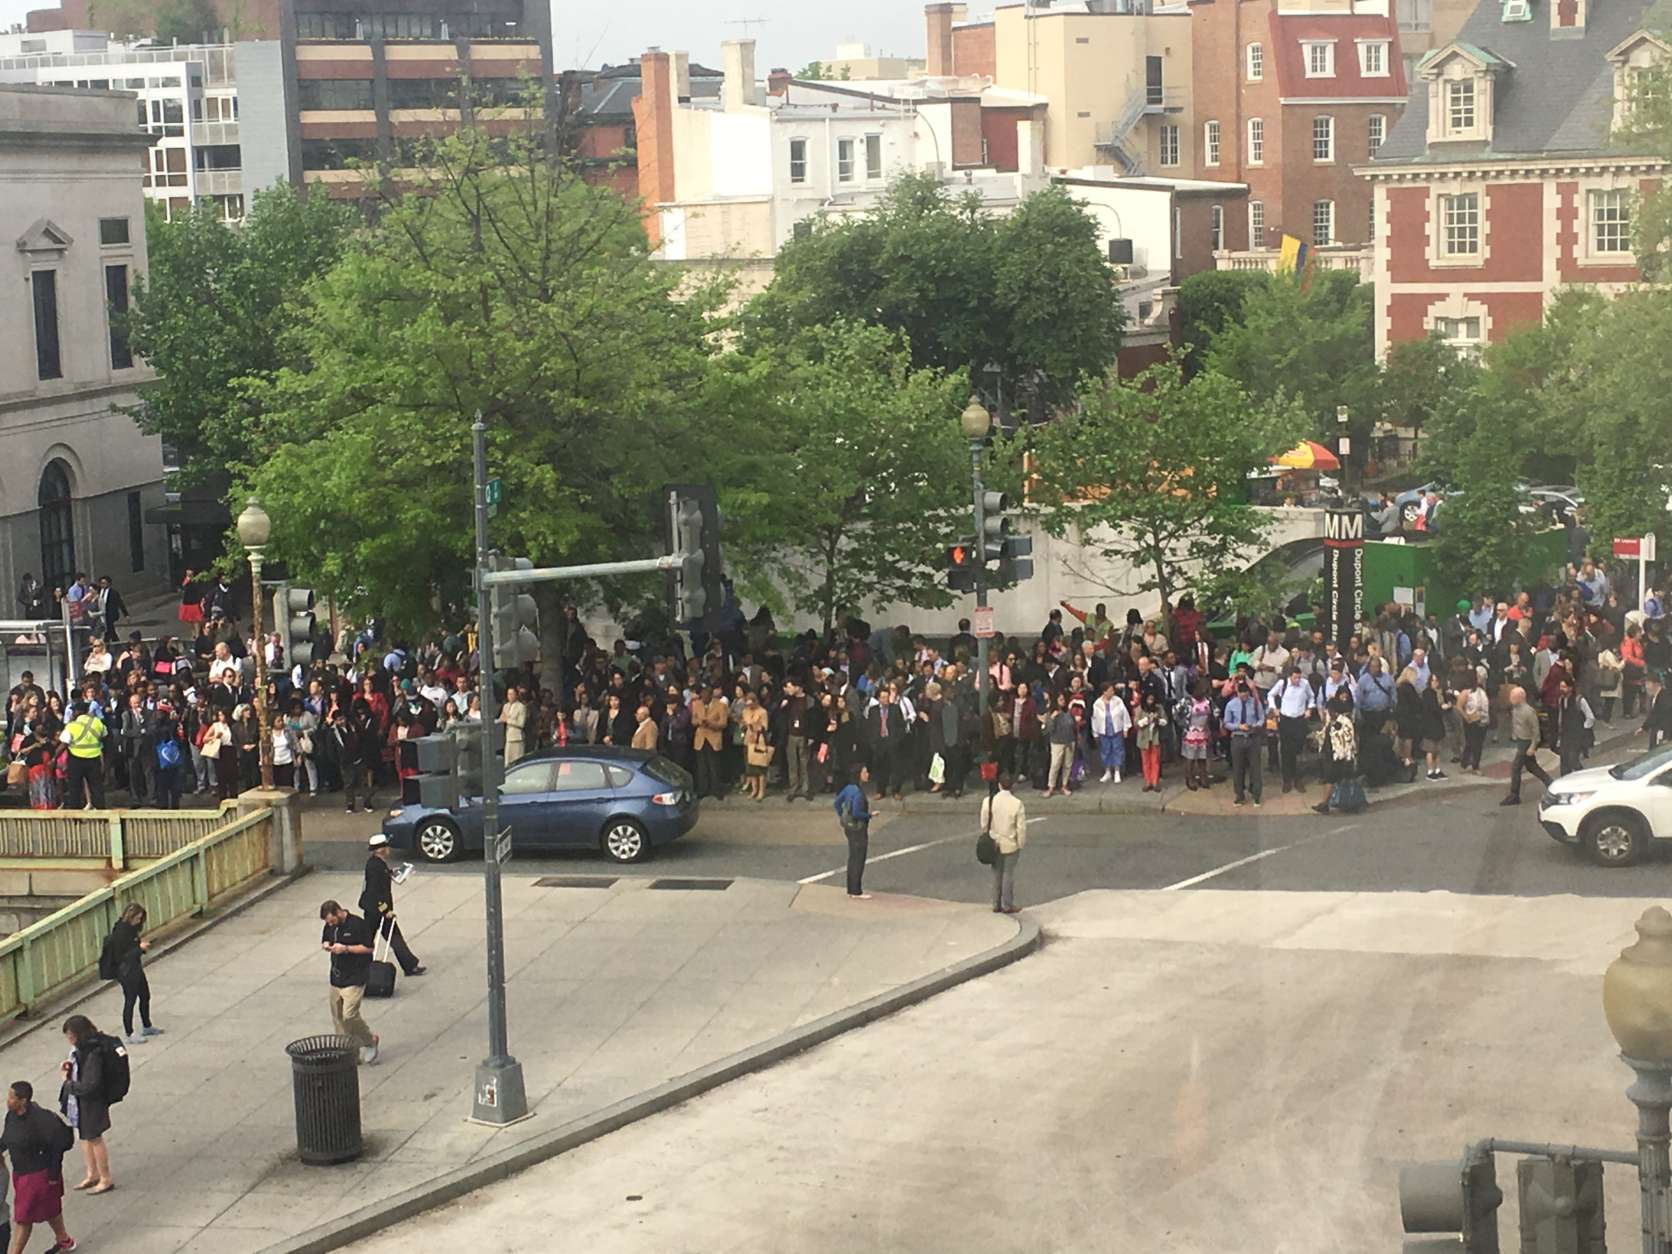 Huge morning crowds outside the Dupont Circle Metro station Thursday morning amid reports of smoke in a tunnel. (WTOP/Sarah Nania)